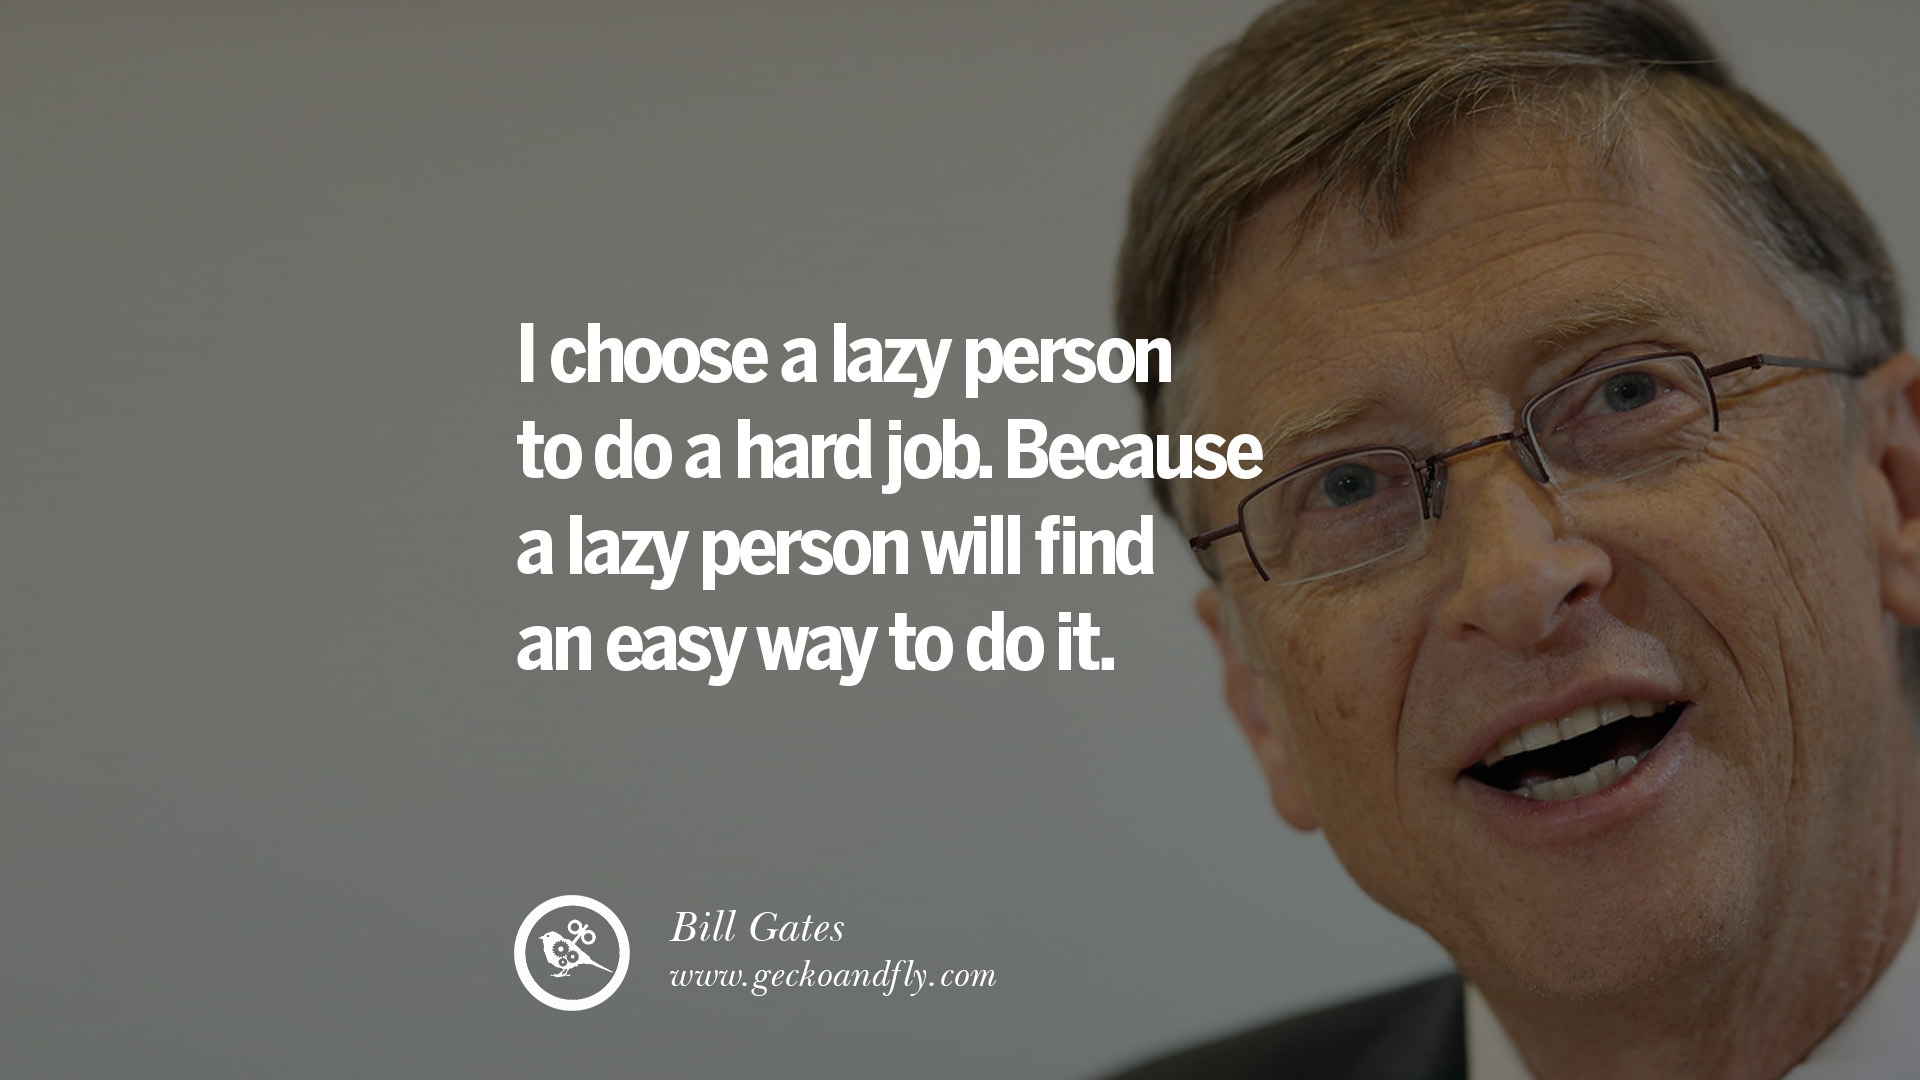 bill gates profile essay Since analysis is one of the cornerstones of critical thought, the analytical essay is a frequent, often demanding, and potentially inspiring.